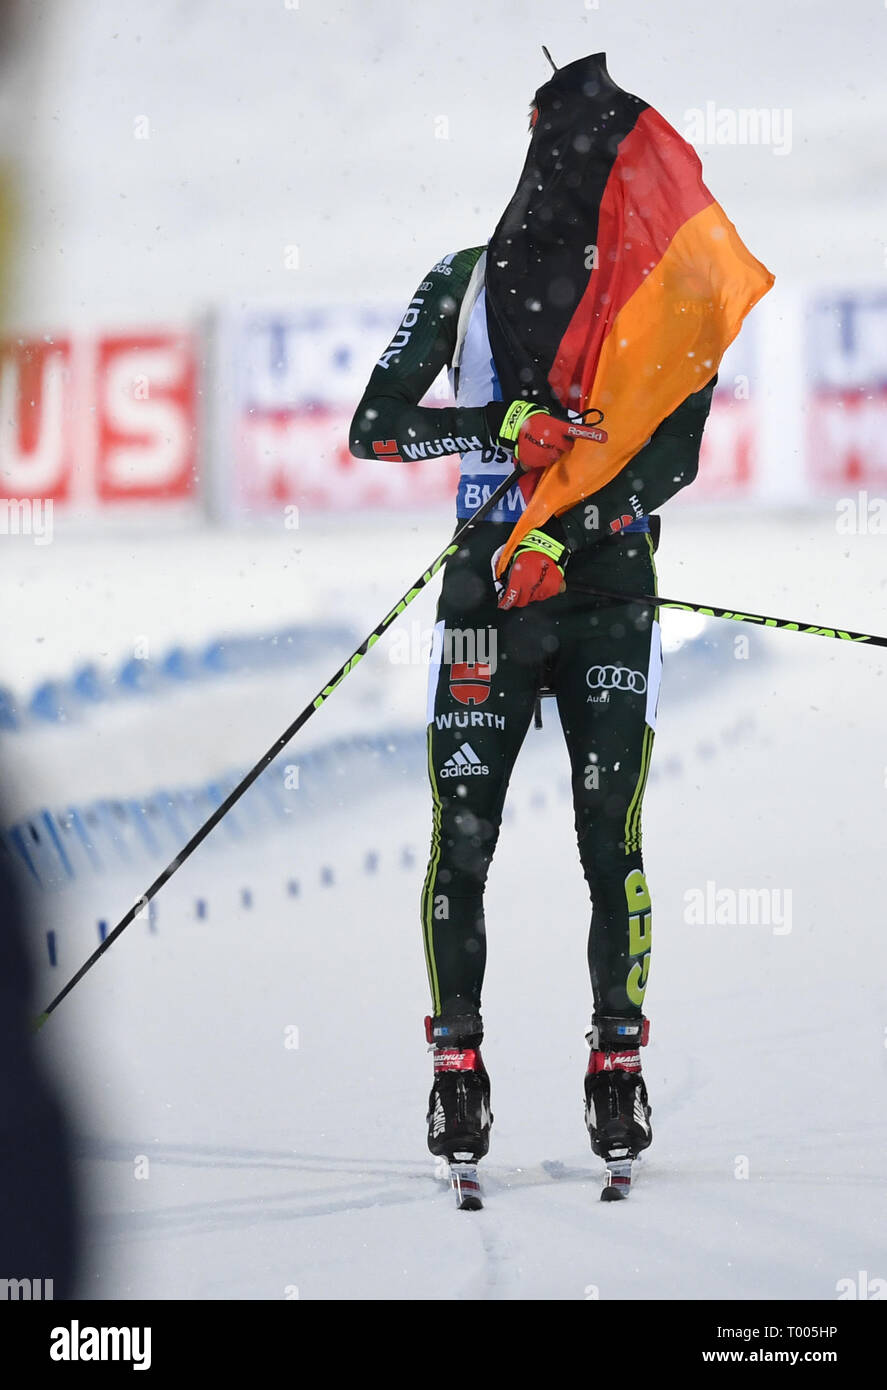 Östersund, Sweden. 16th March 2019. World Championship, relay 4 x 7, 5 km, men. Benedikt Doll from Germany cheers and finishes second with the German flag. Credit: dpa picture alliance/Alamy Live News Credit: dpa picture alliance/Alamy Live News - Stock Image